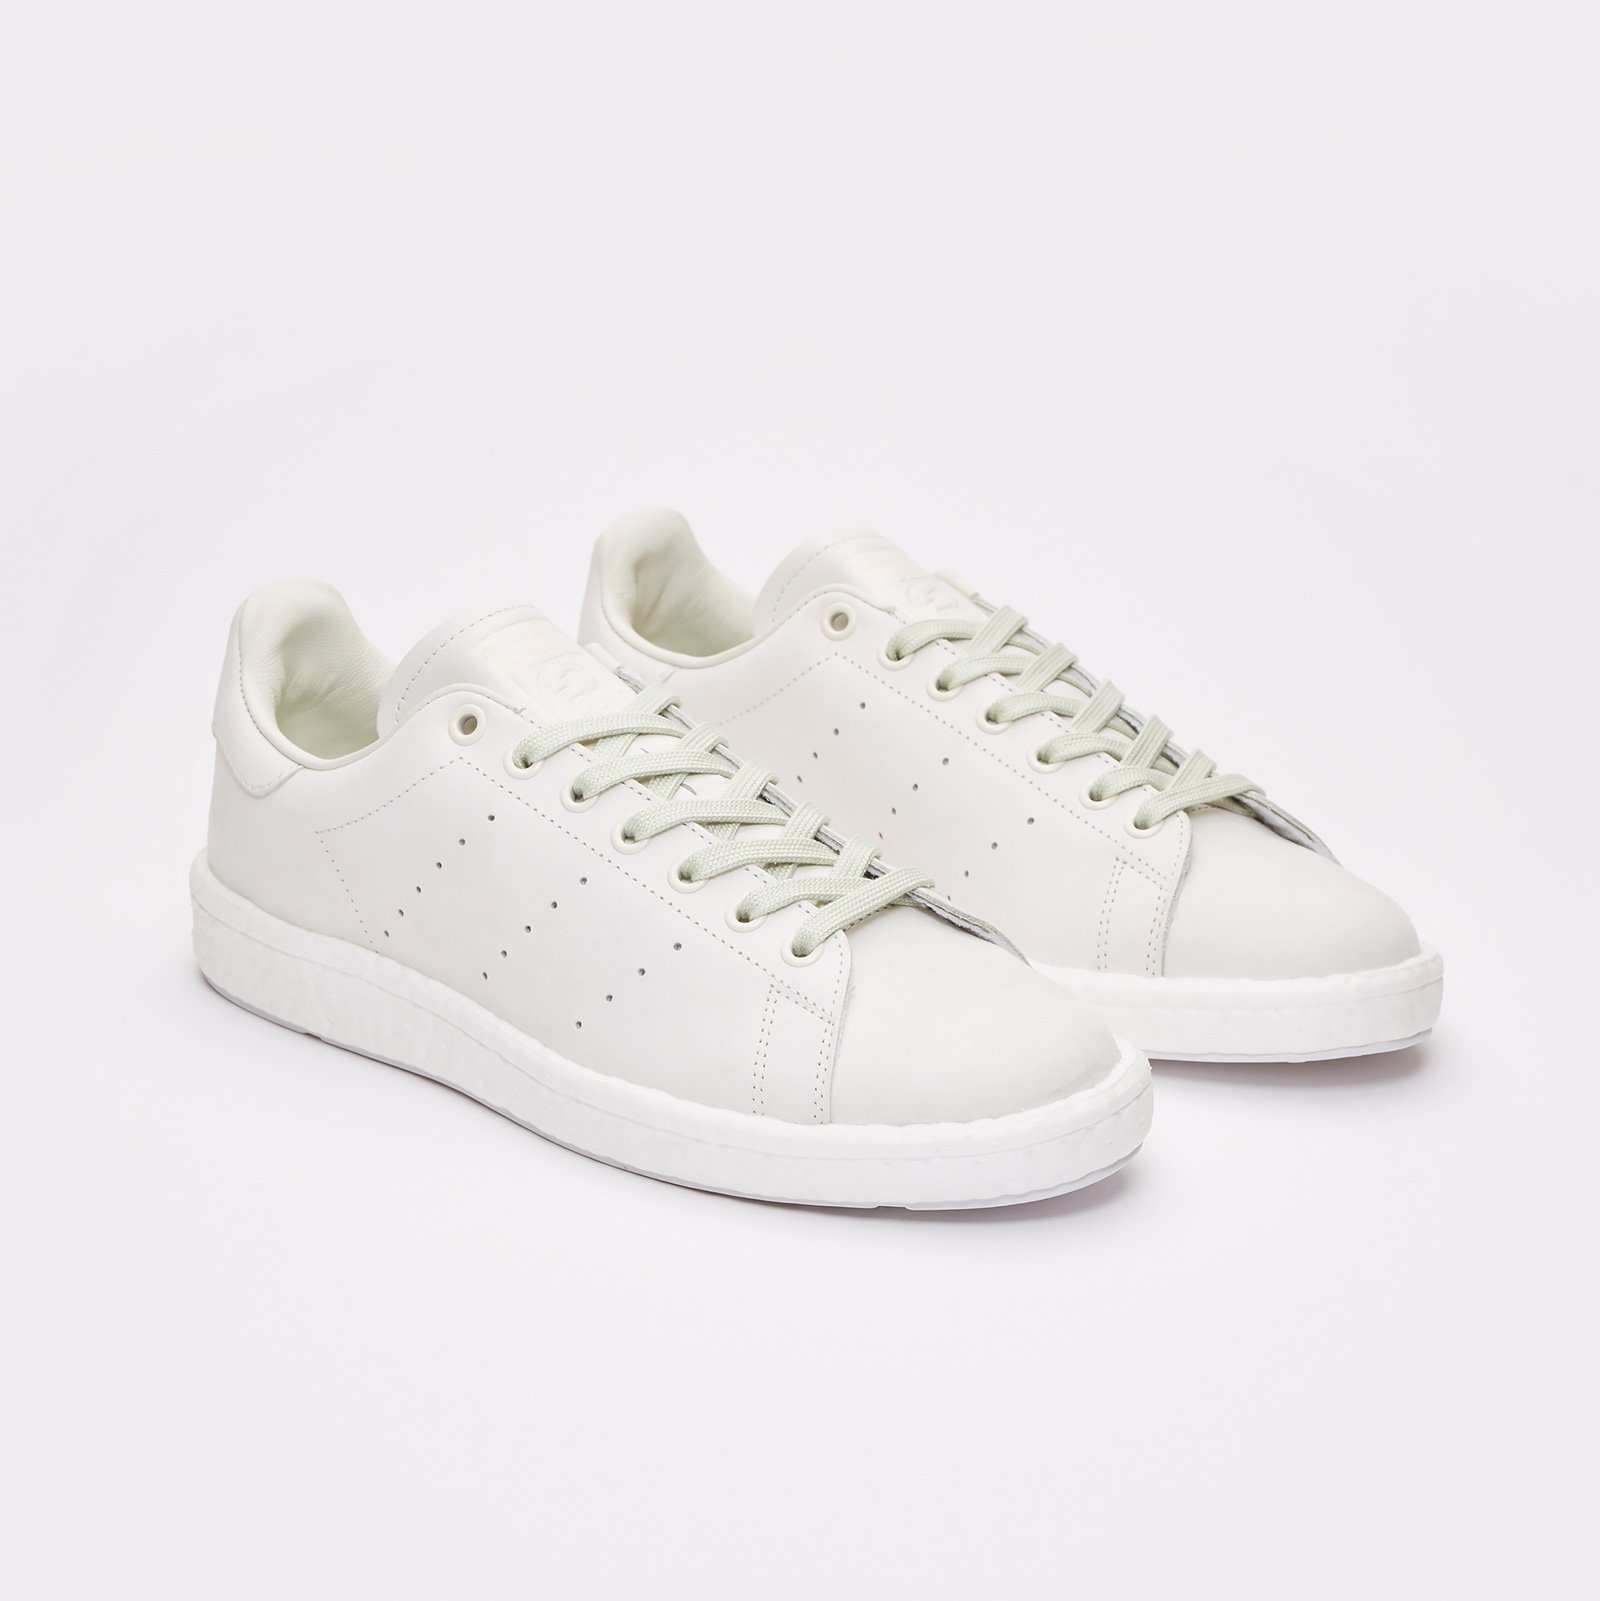 size 40 90ff7 5ee40 adidas Stan Smith Boost - By2281 - Sneakersnstuff | sneakers ...